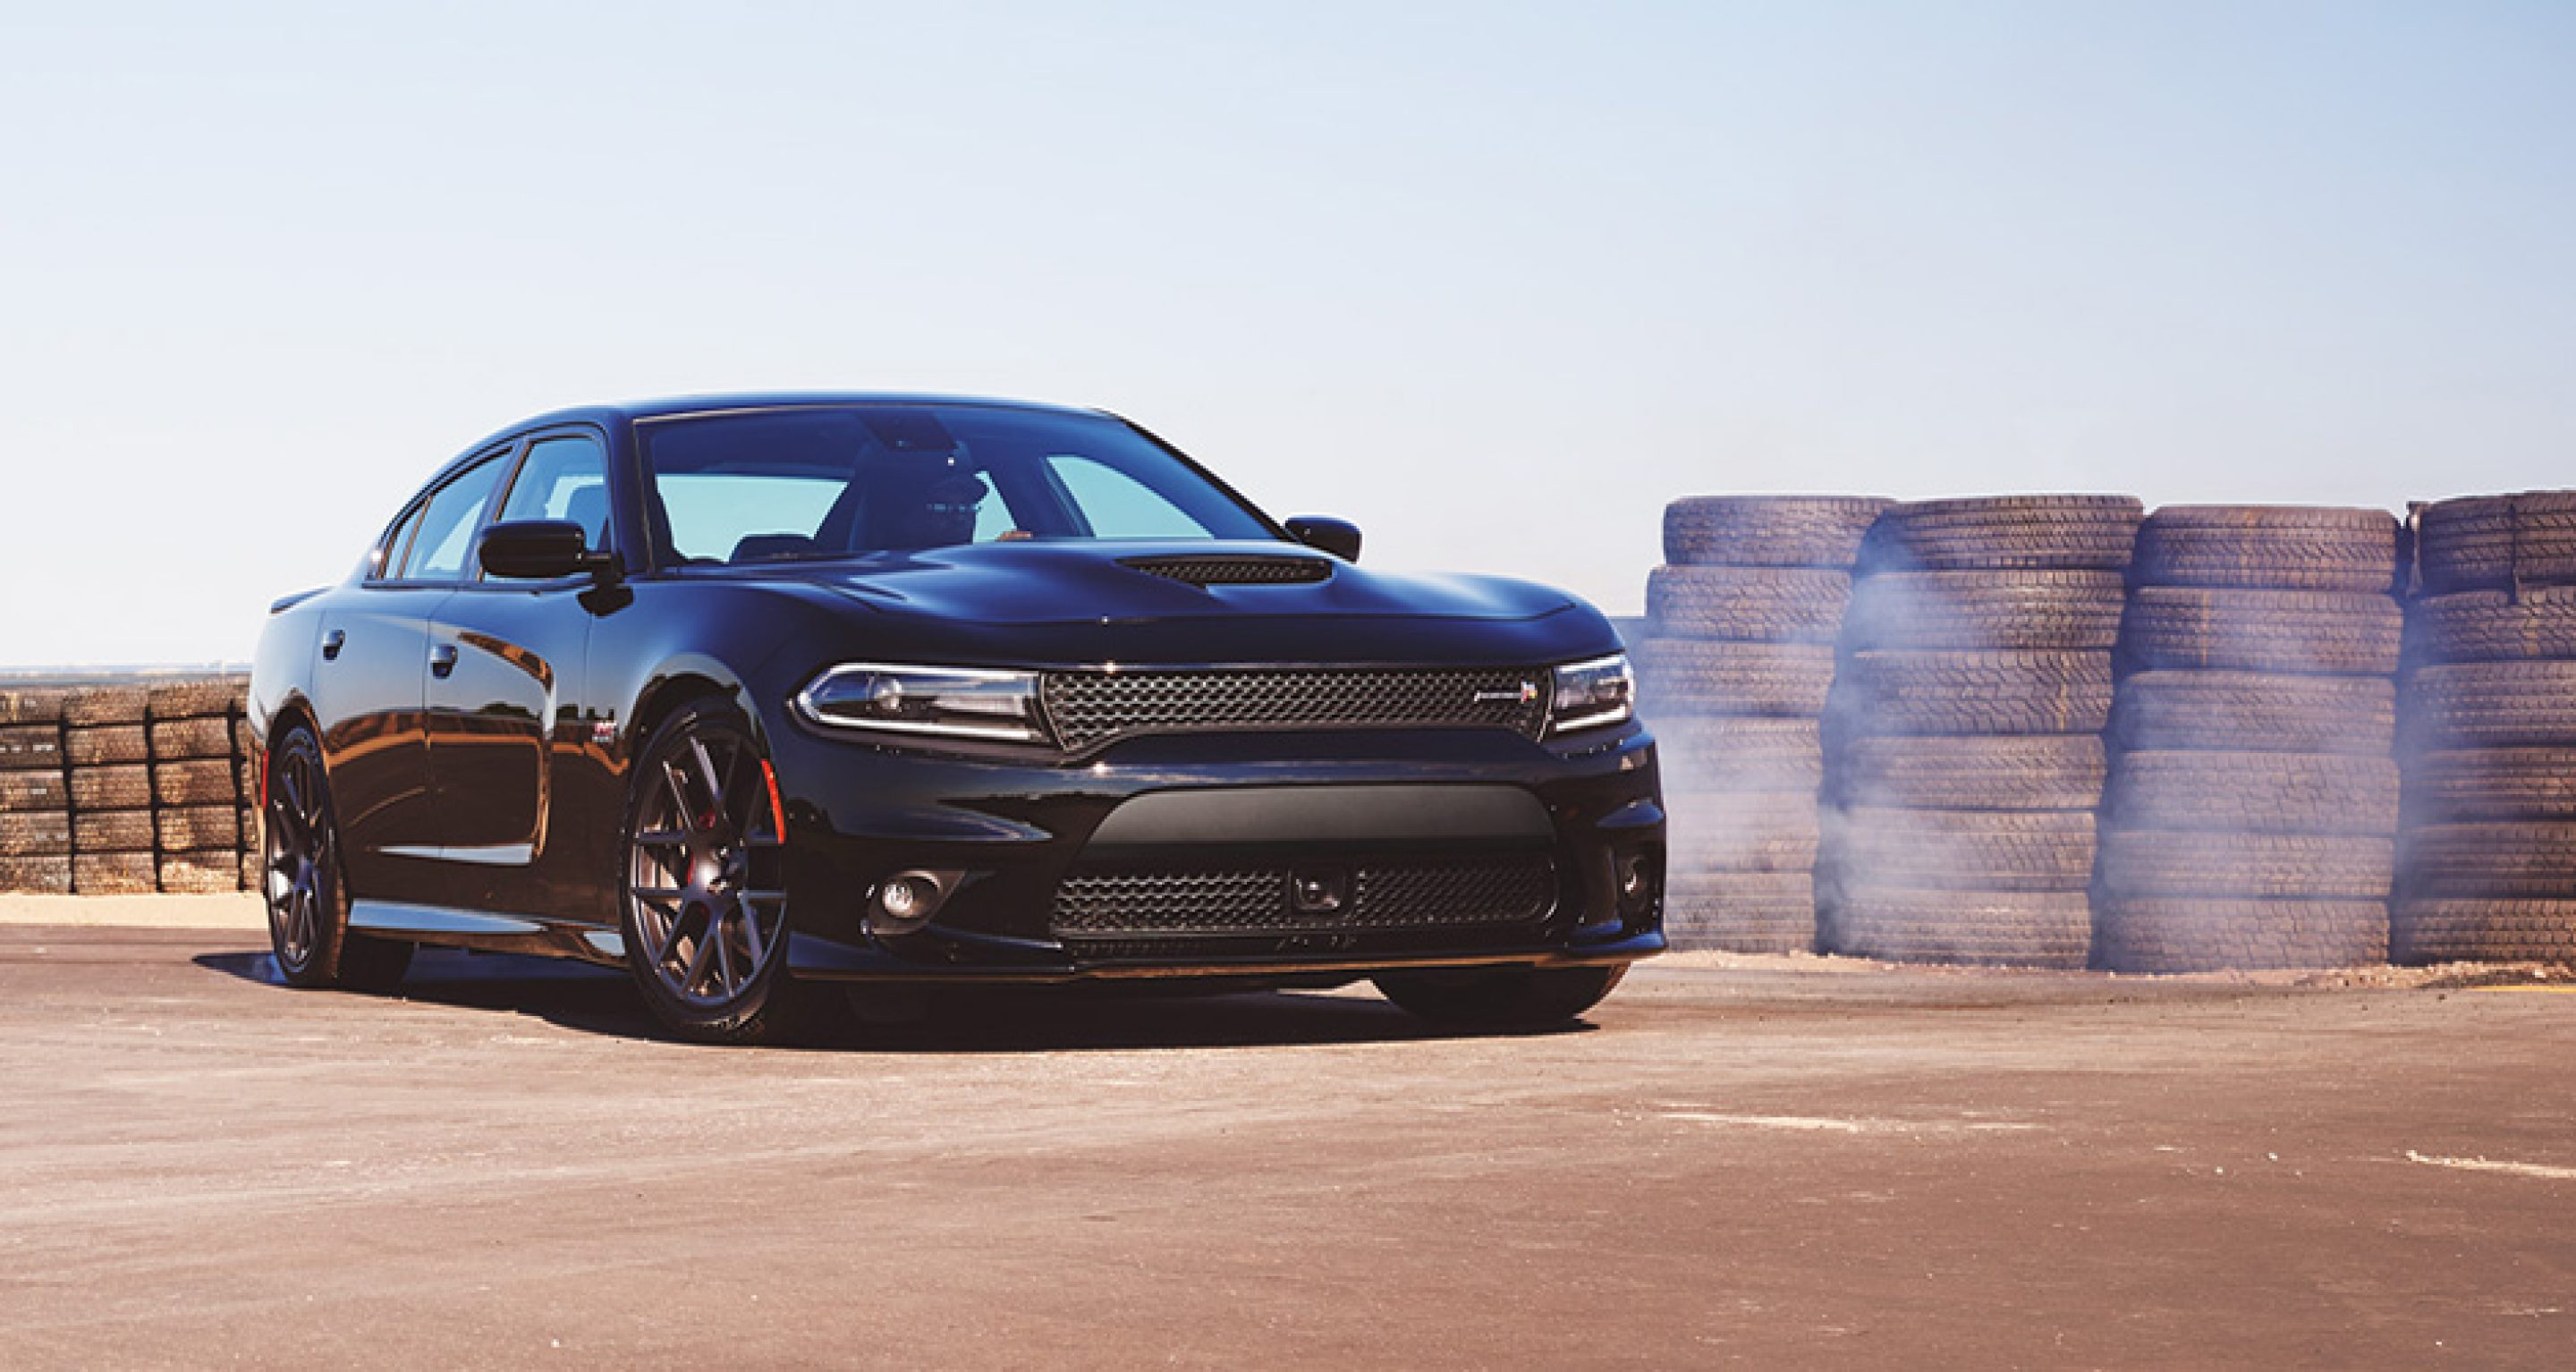 2018-charger-gallery-exterior15.jpg.image_.2880